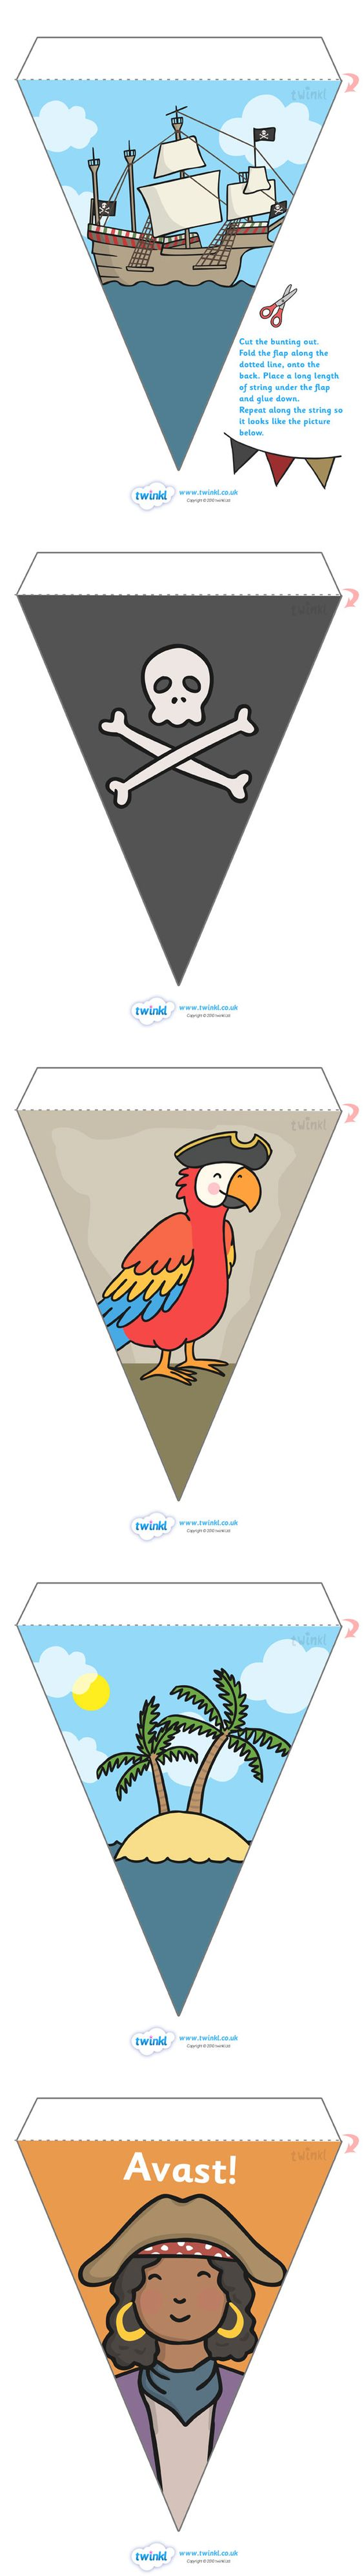 Twinkl Resources >> Pirate Display Bunting  >> Classroom printables for Pre-School, Kindergarten, Elementary School and beyond! Buntings, Display, Pirates, Classroom Decor